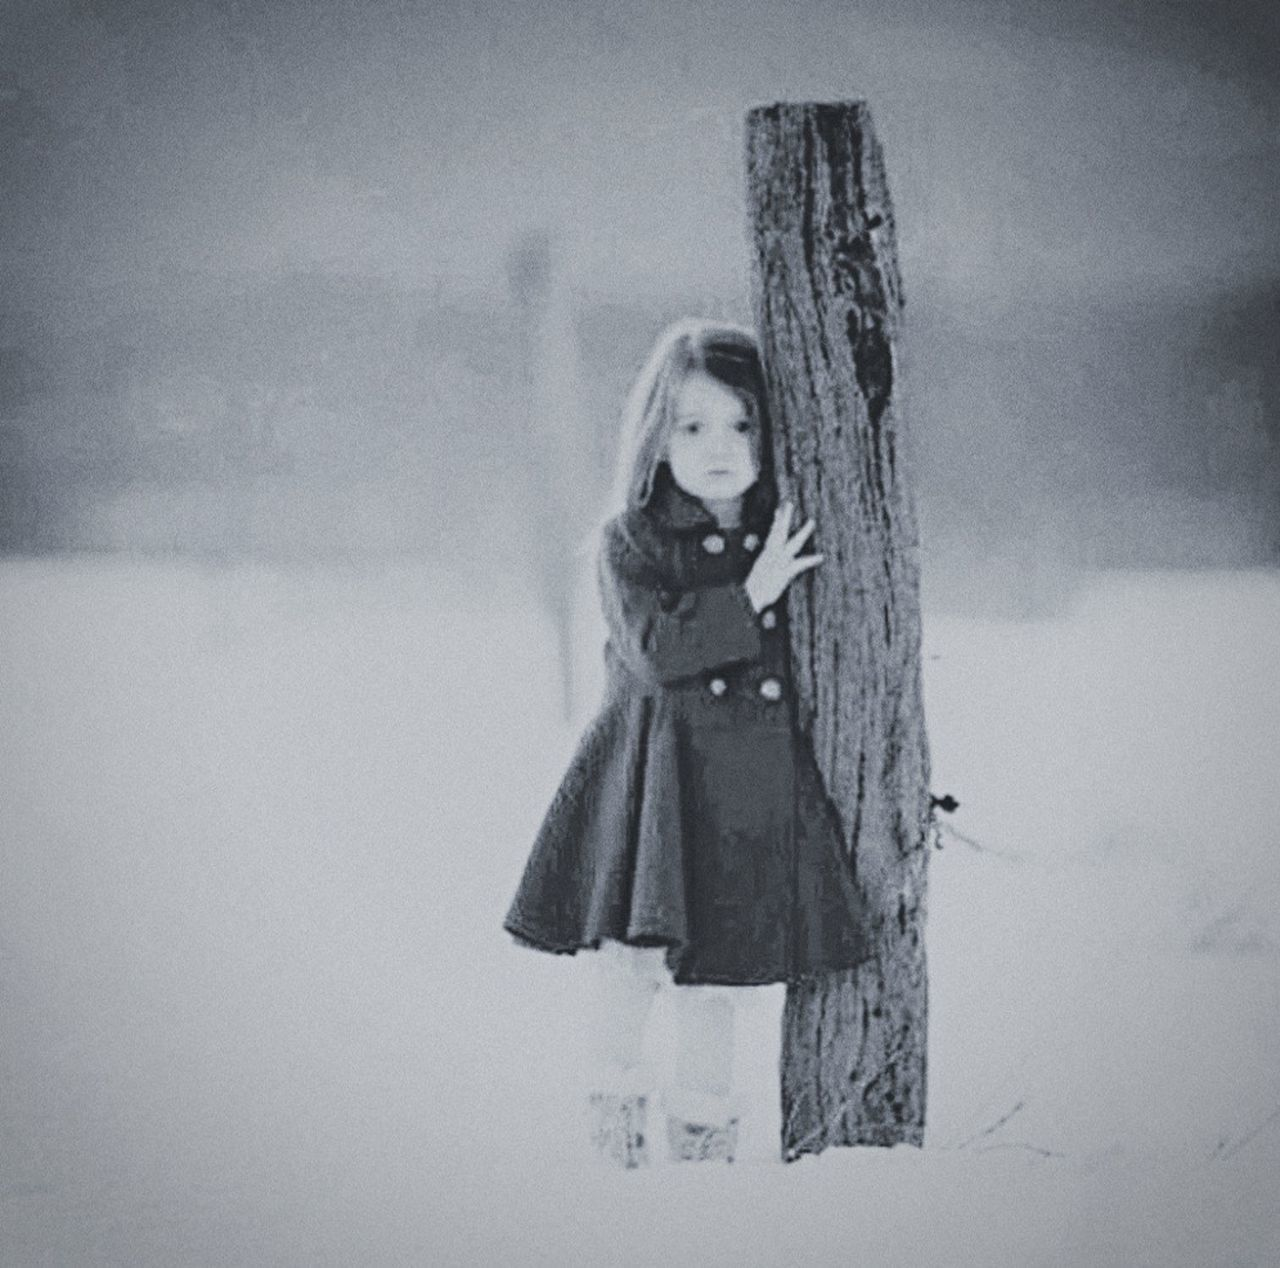 winter, snow, cold temperature, one person, childhood, outdoors, real people, full length, day, sky, people